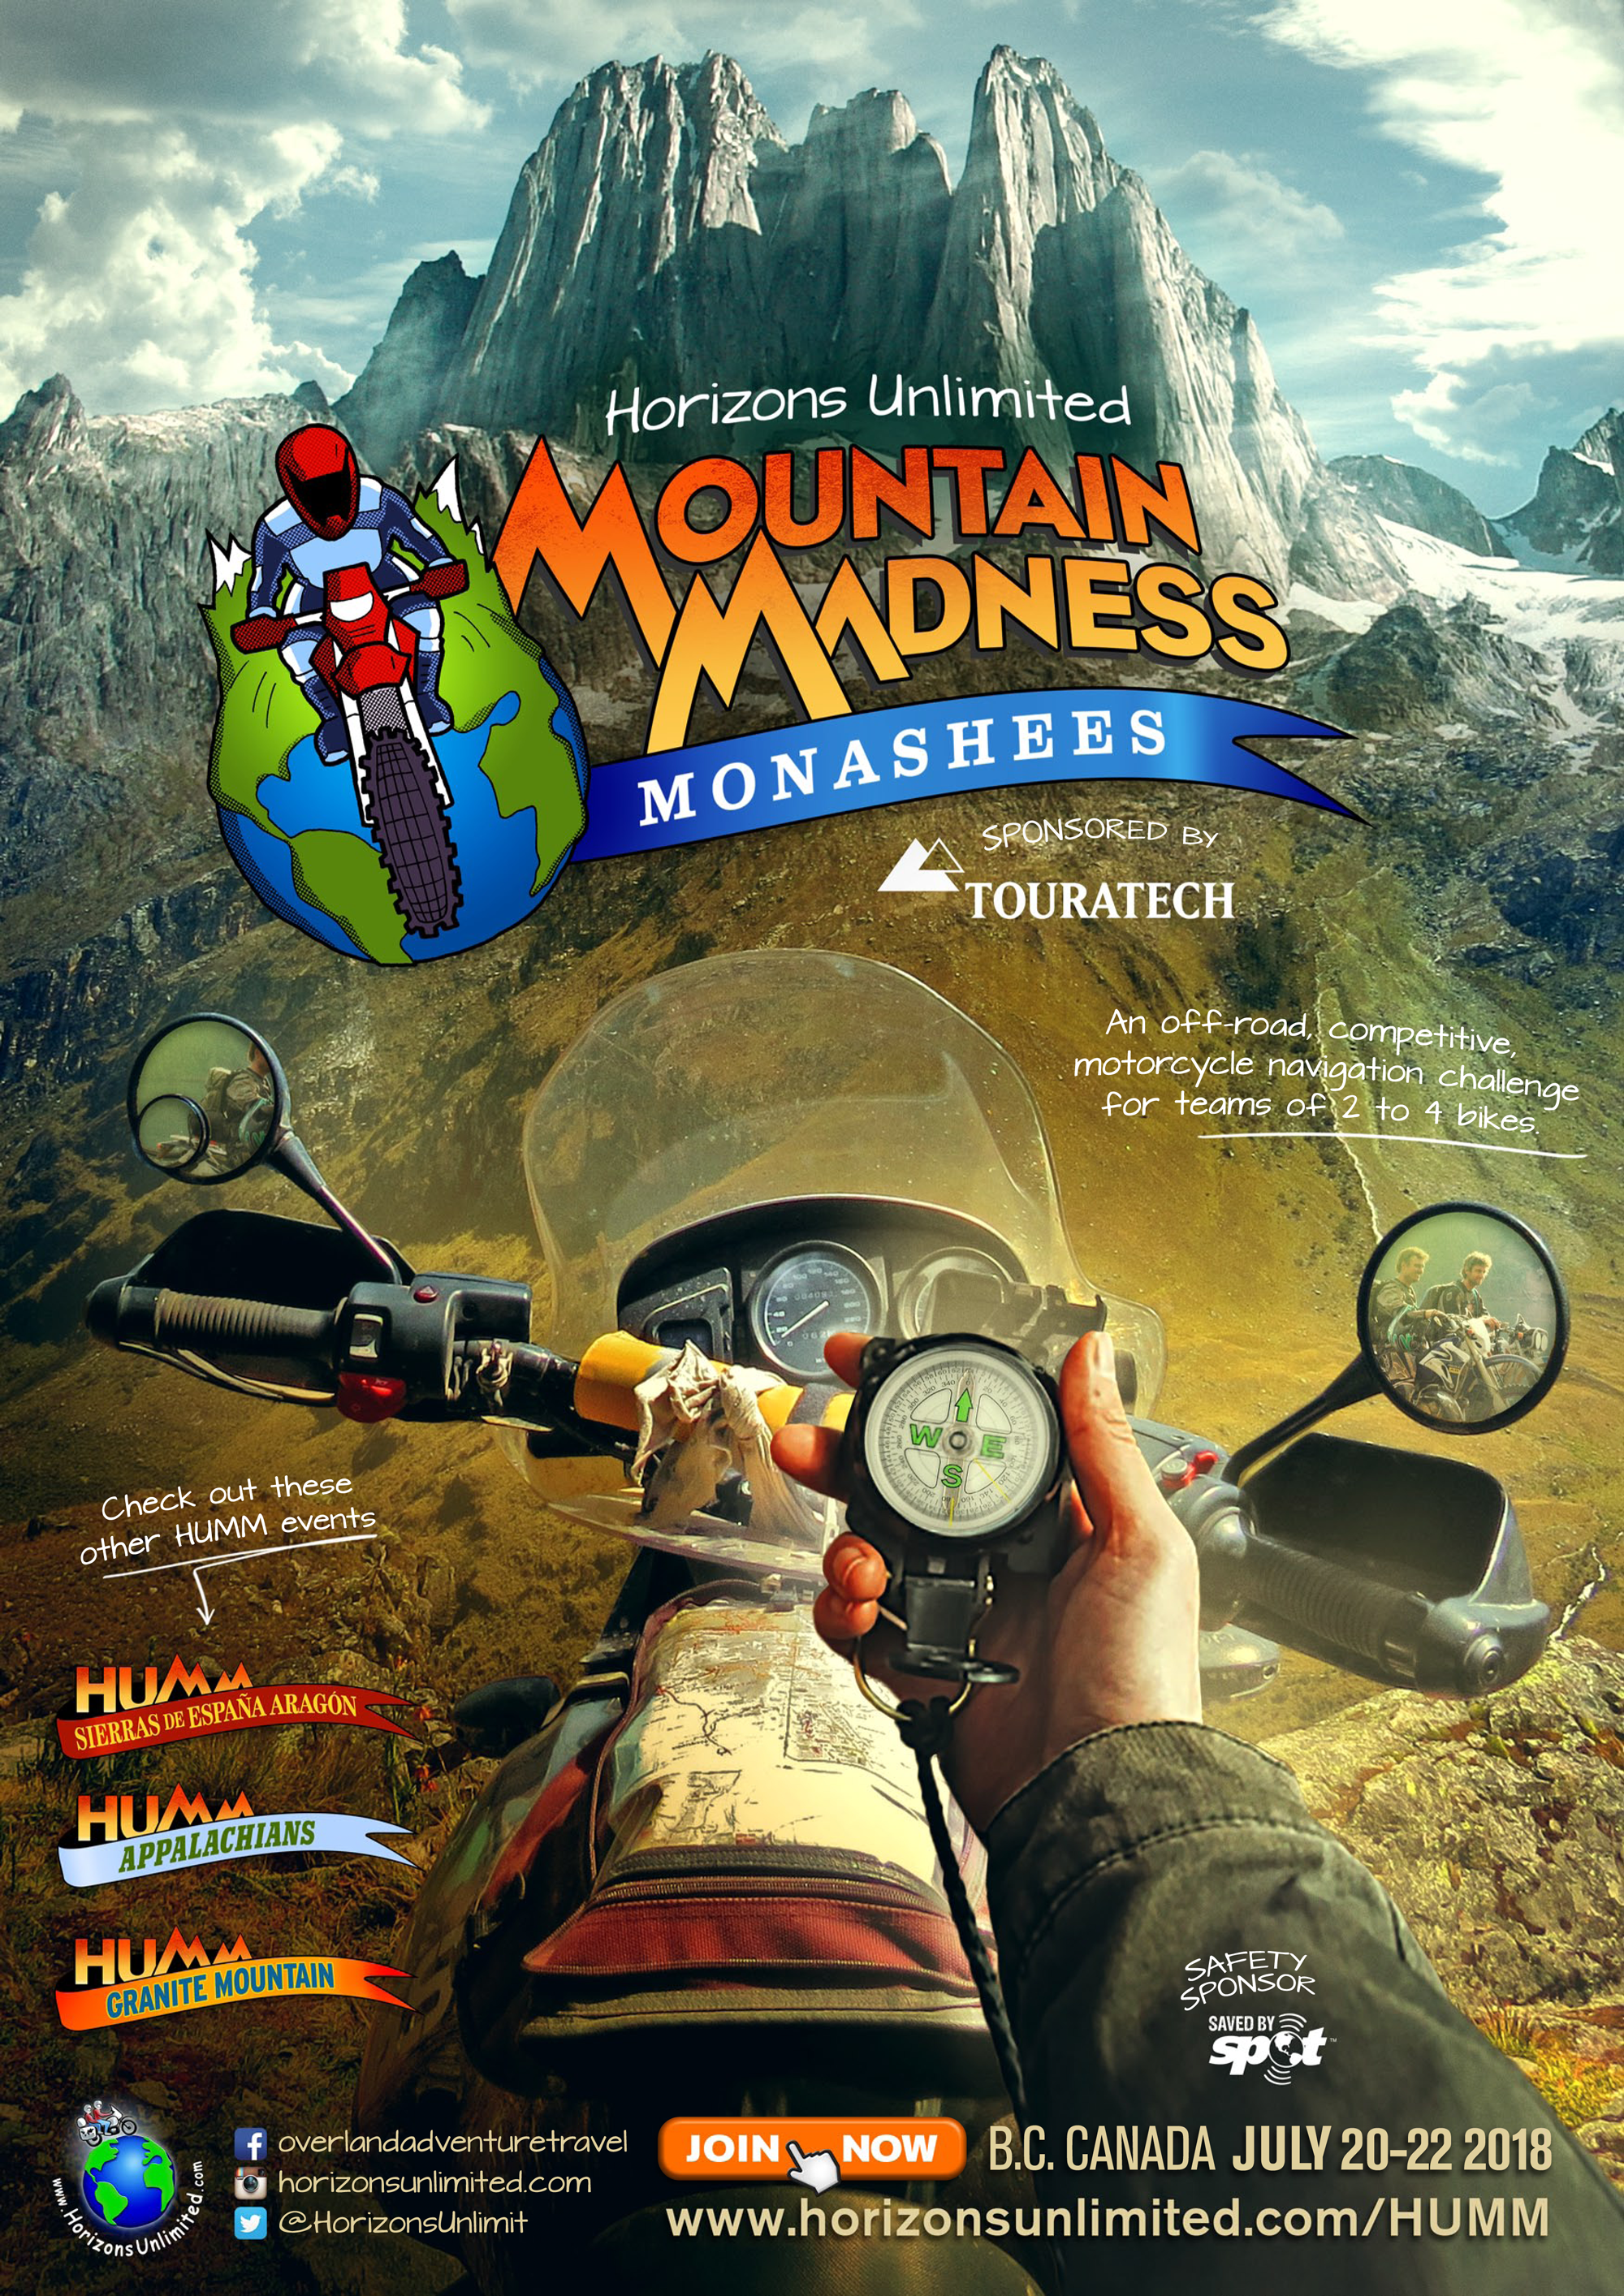 HUMMMonashees2018-Horizons-Unlimited.png